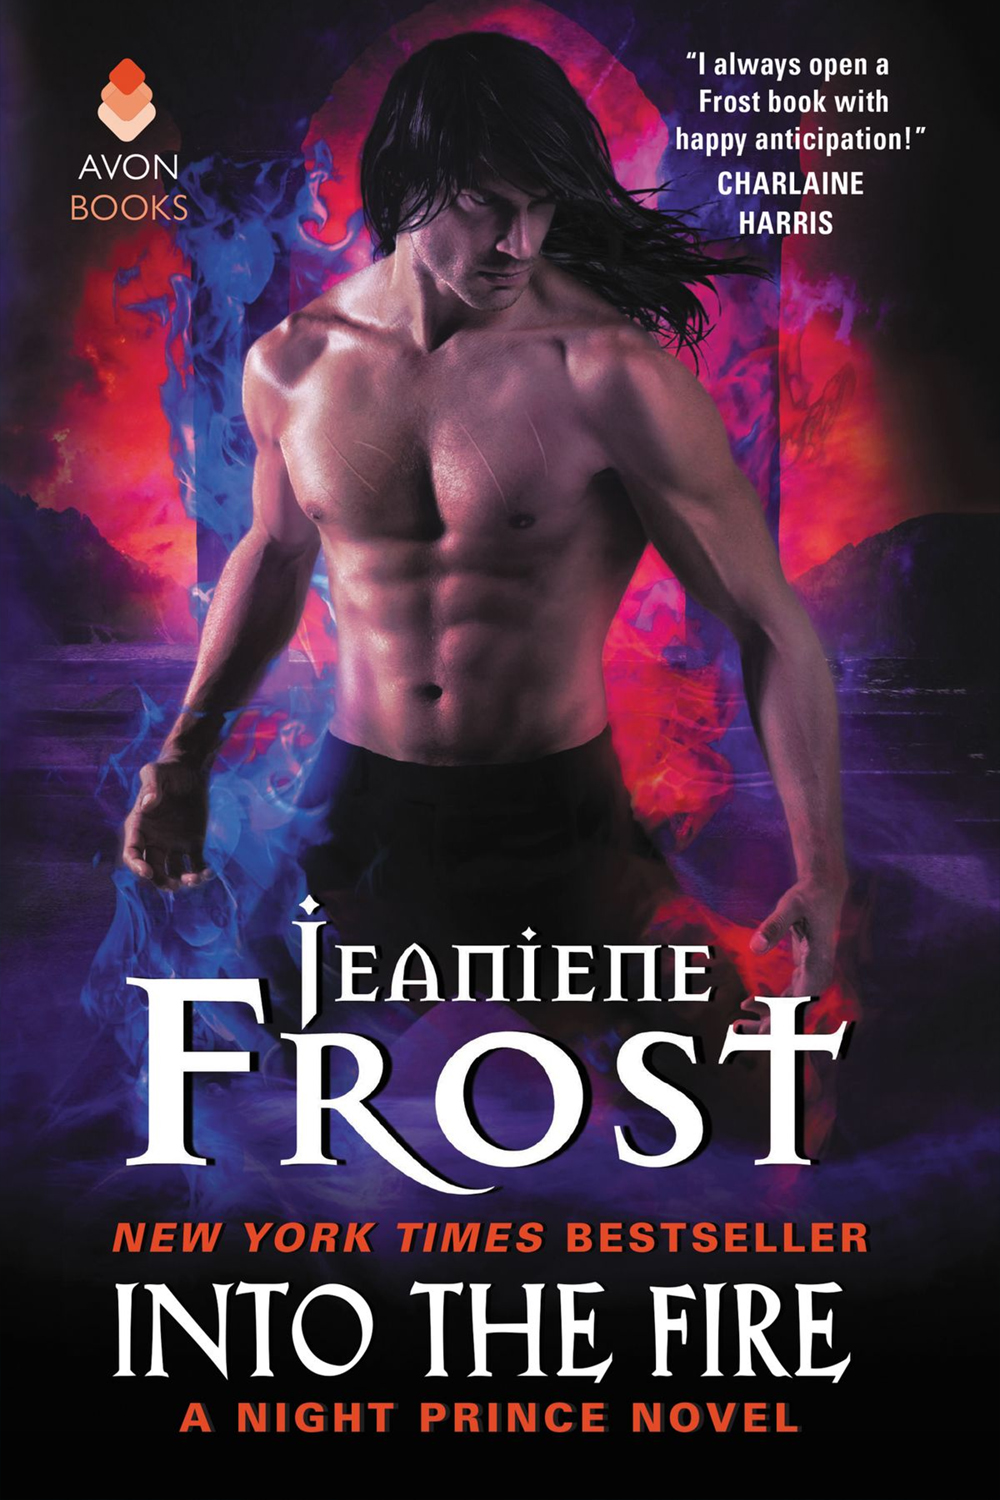 S1 E26 Into the Fire by Jeaniene Frost